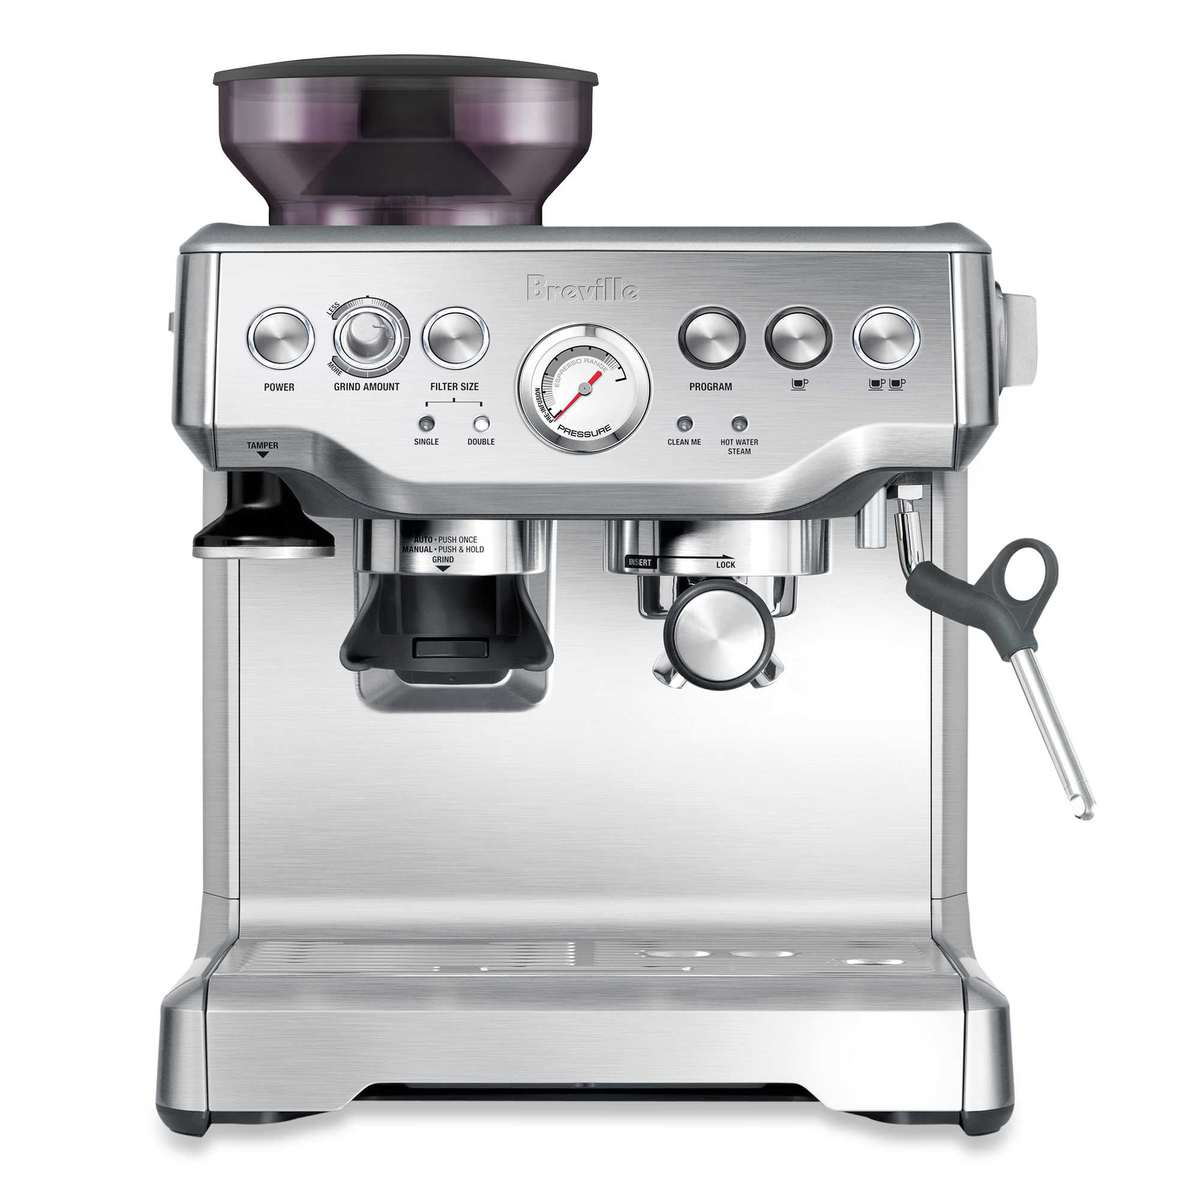 Breville® The Barista Express™ BES870XL Espresso Machine in Stainless Steel | Peace Love and Low Carb